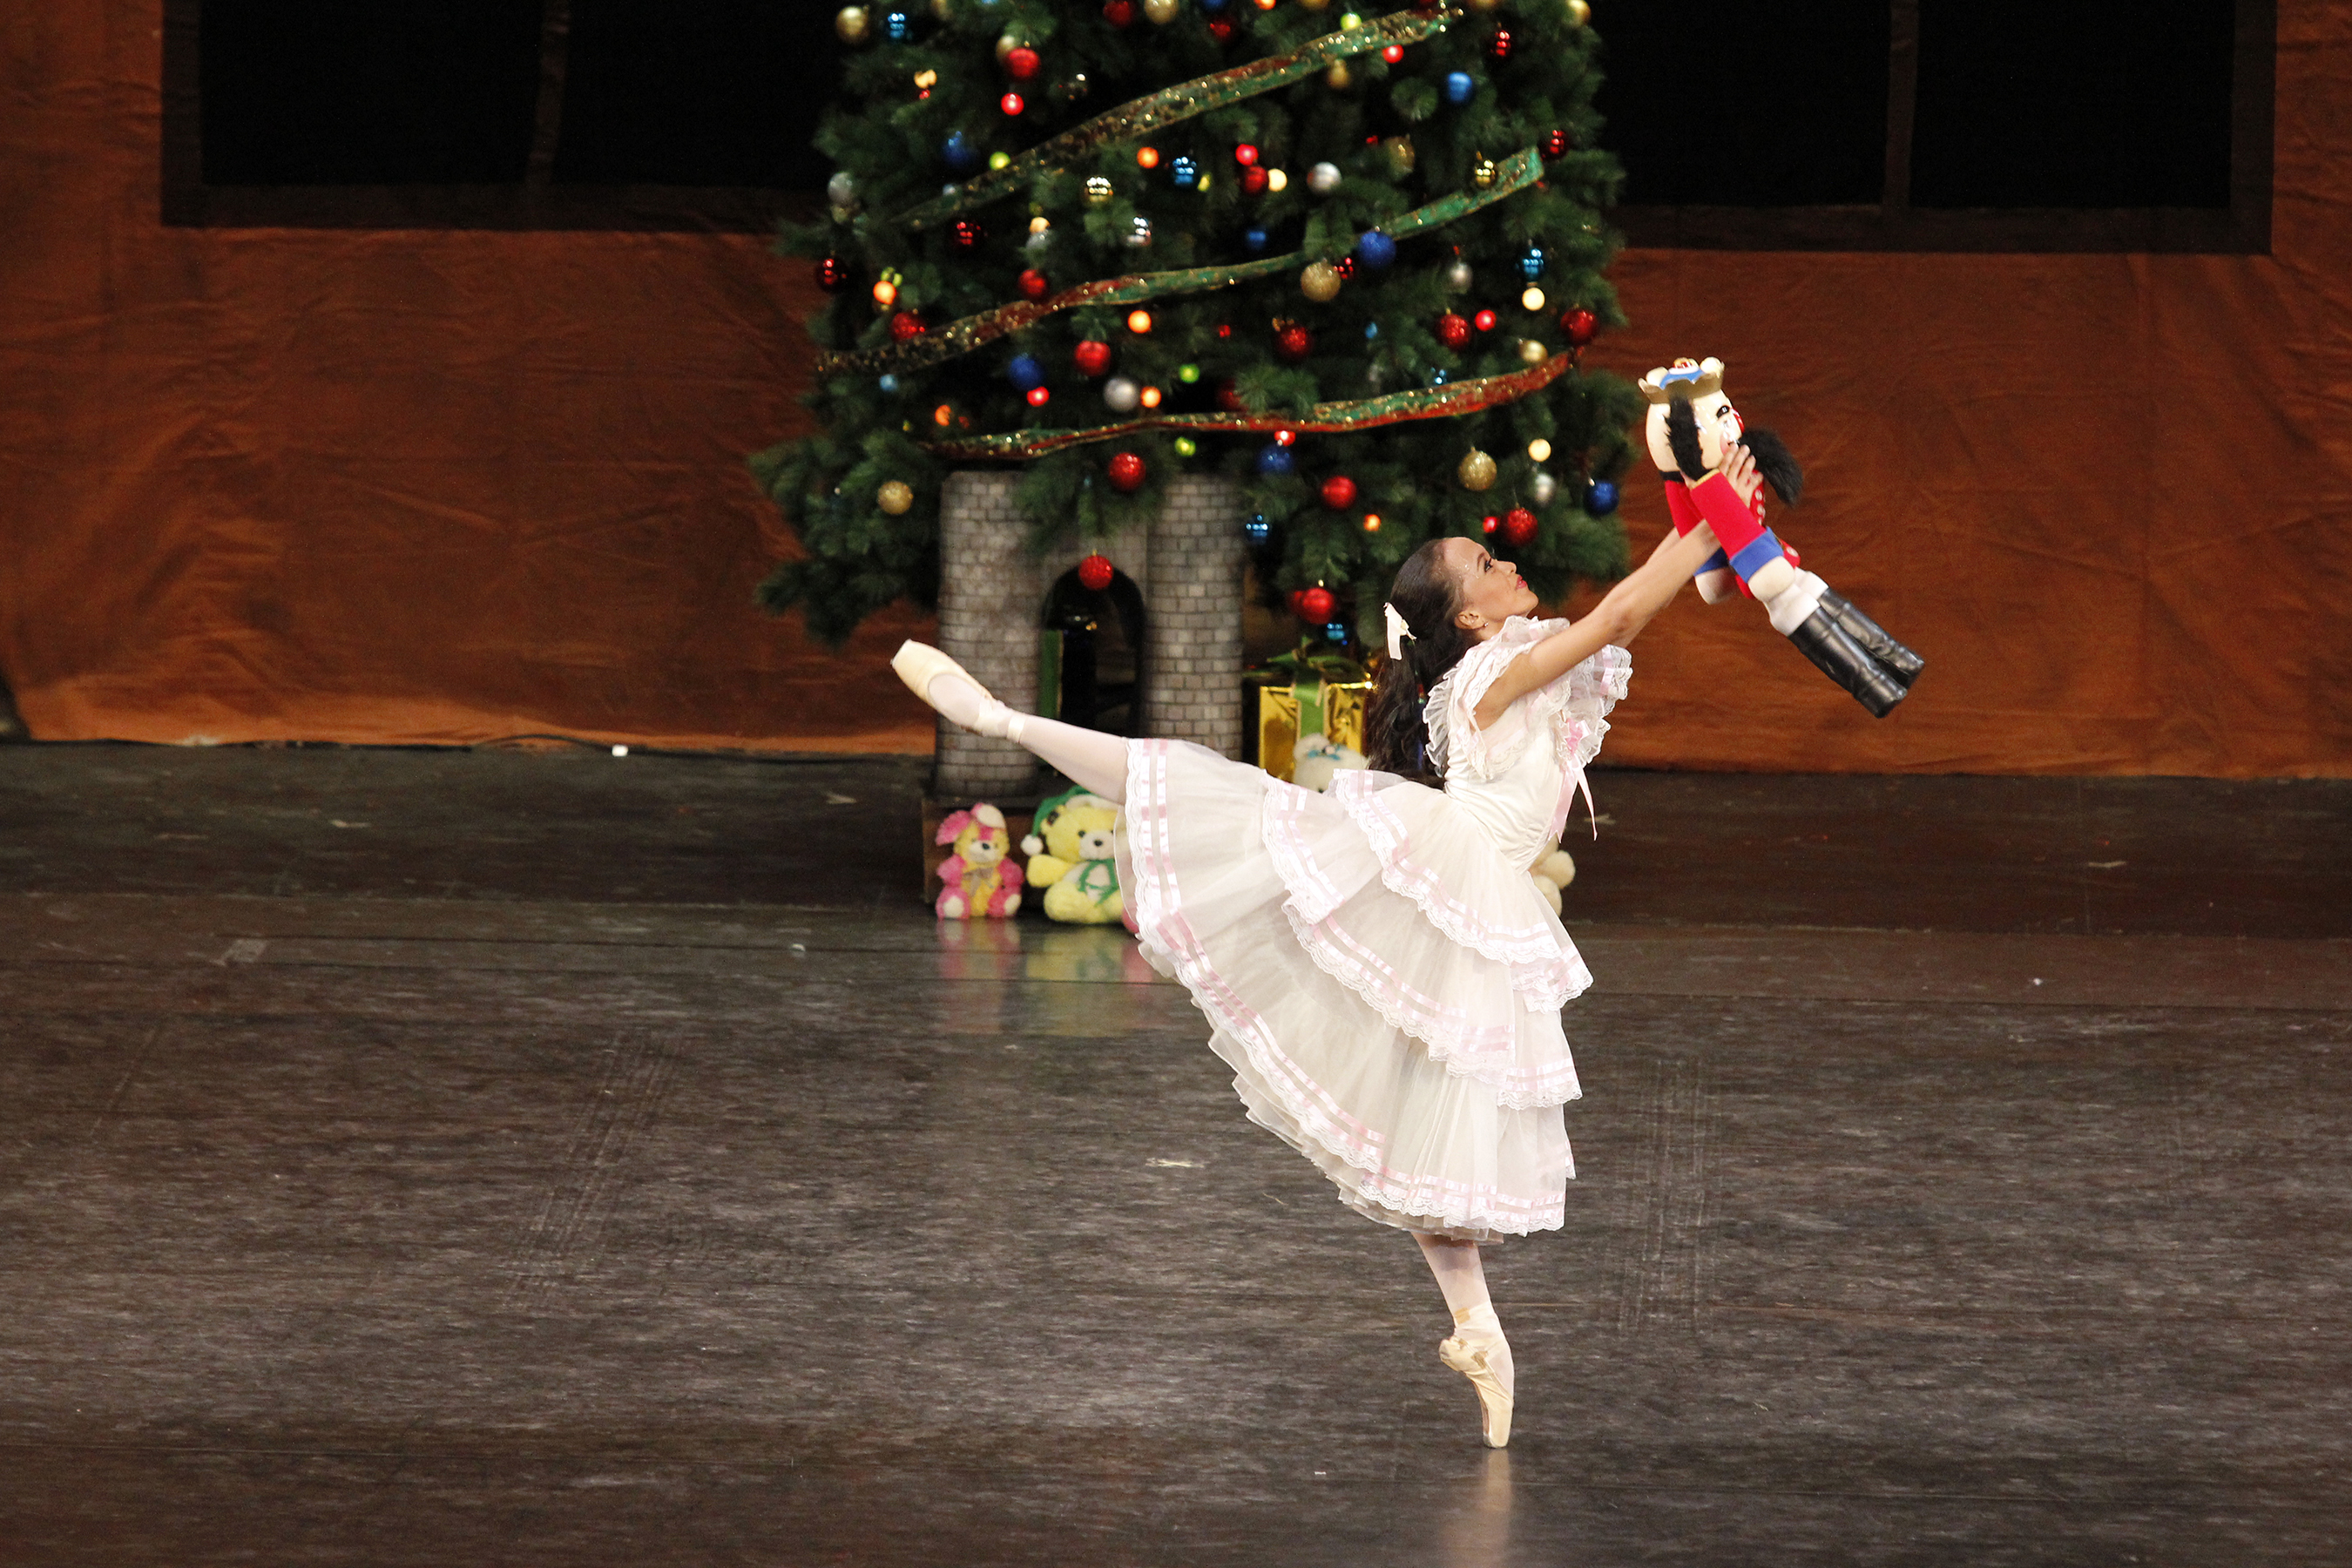 Among Jessa's most memorable performances was the role of Masha in the much-loved ballet, The Nutcracker